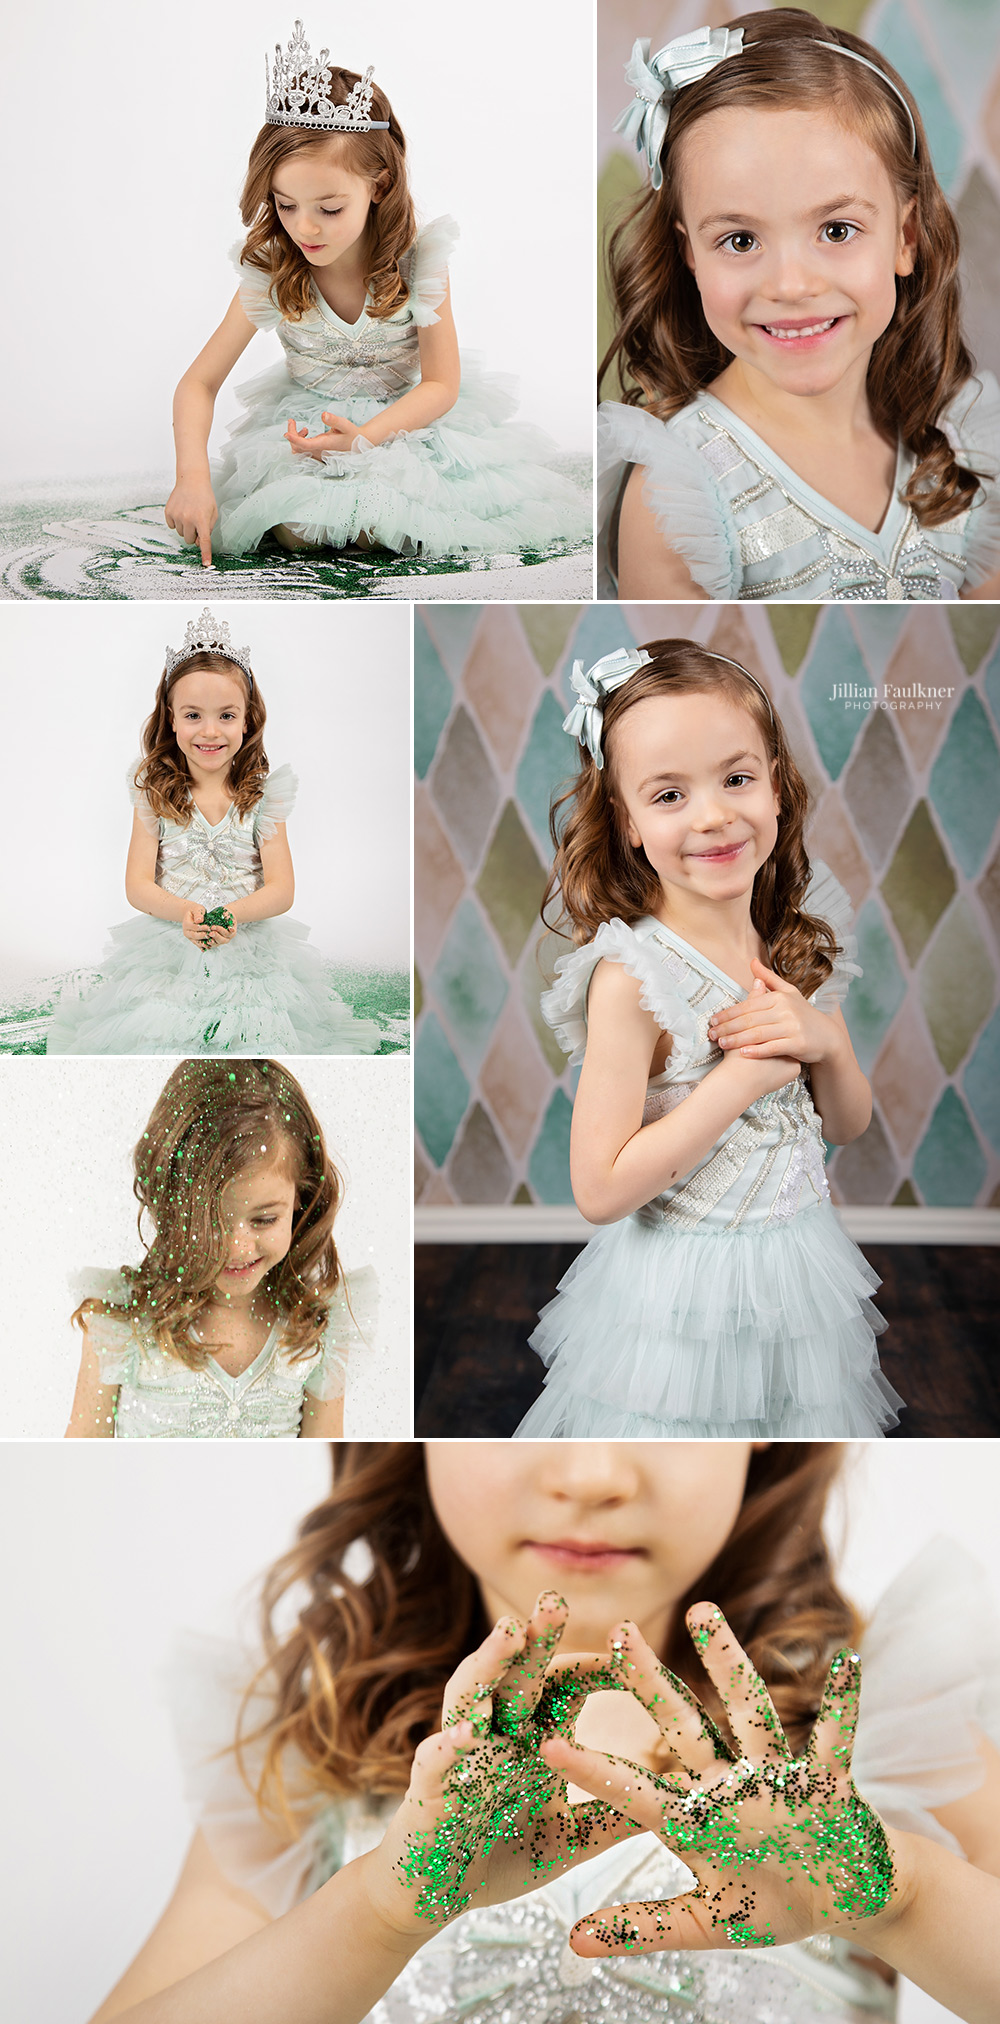 Jillian Faulkner is a child and family photographer located in Calgary, Alberta offering portrait photography sessions in studio and on location. Jillian is passionate about milestone photography sessions for children and offers a variety of backdrop selections to her clients.